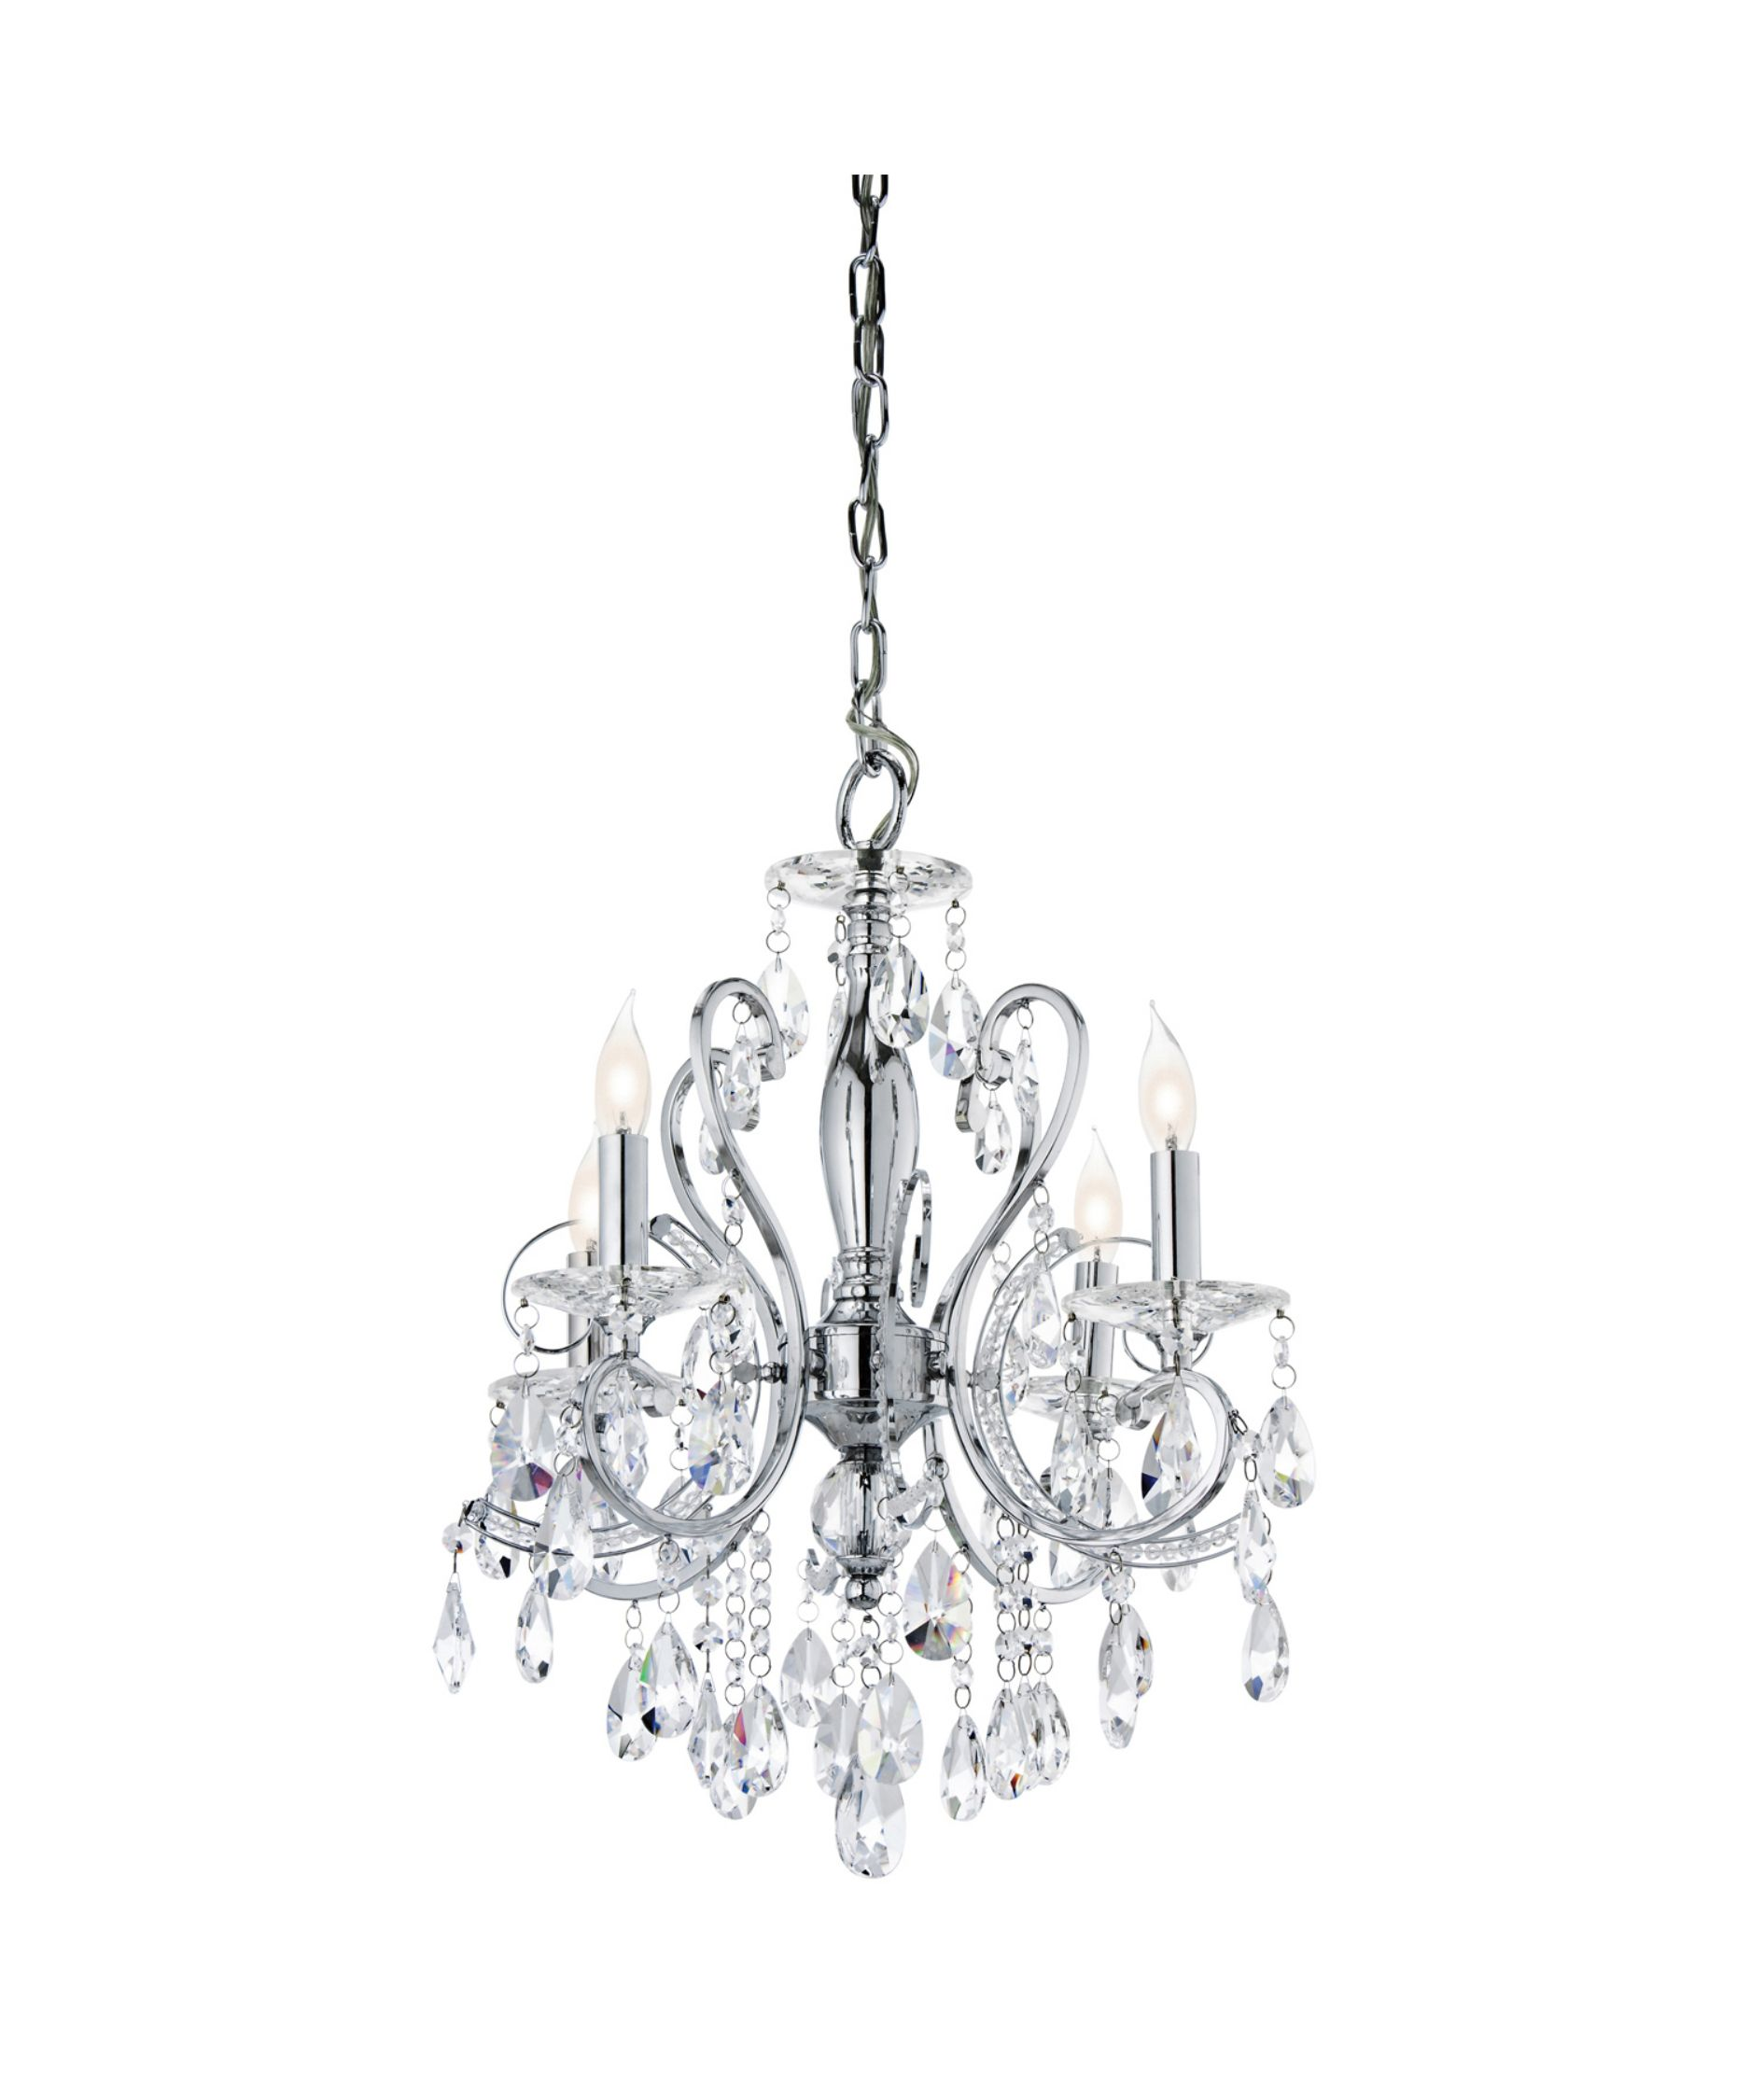 Nice Mini Chandelier For Bathroom 7 Mini Crystal Chandelier – Mini Crystal Chandelier Under 100